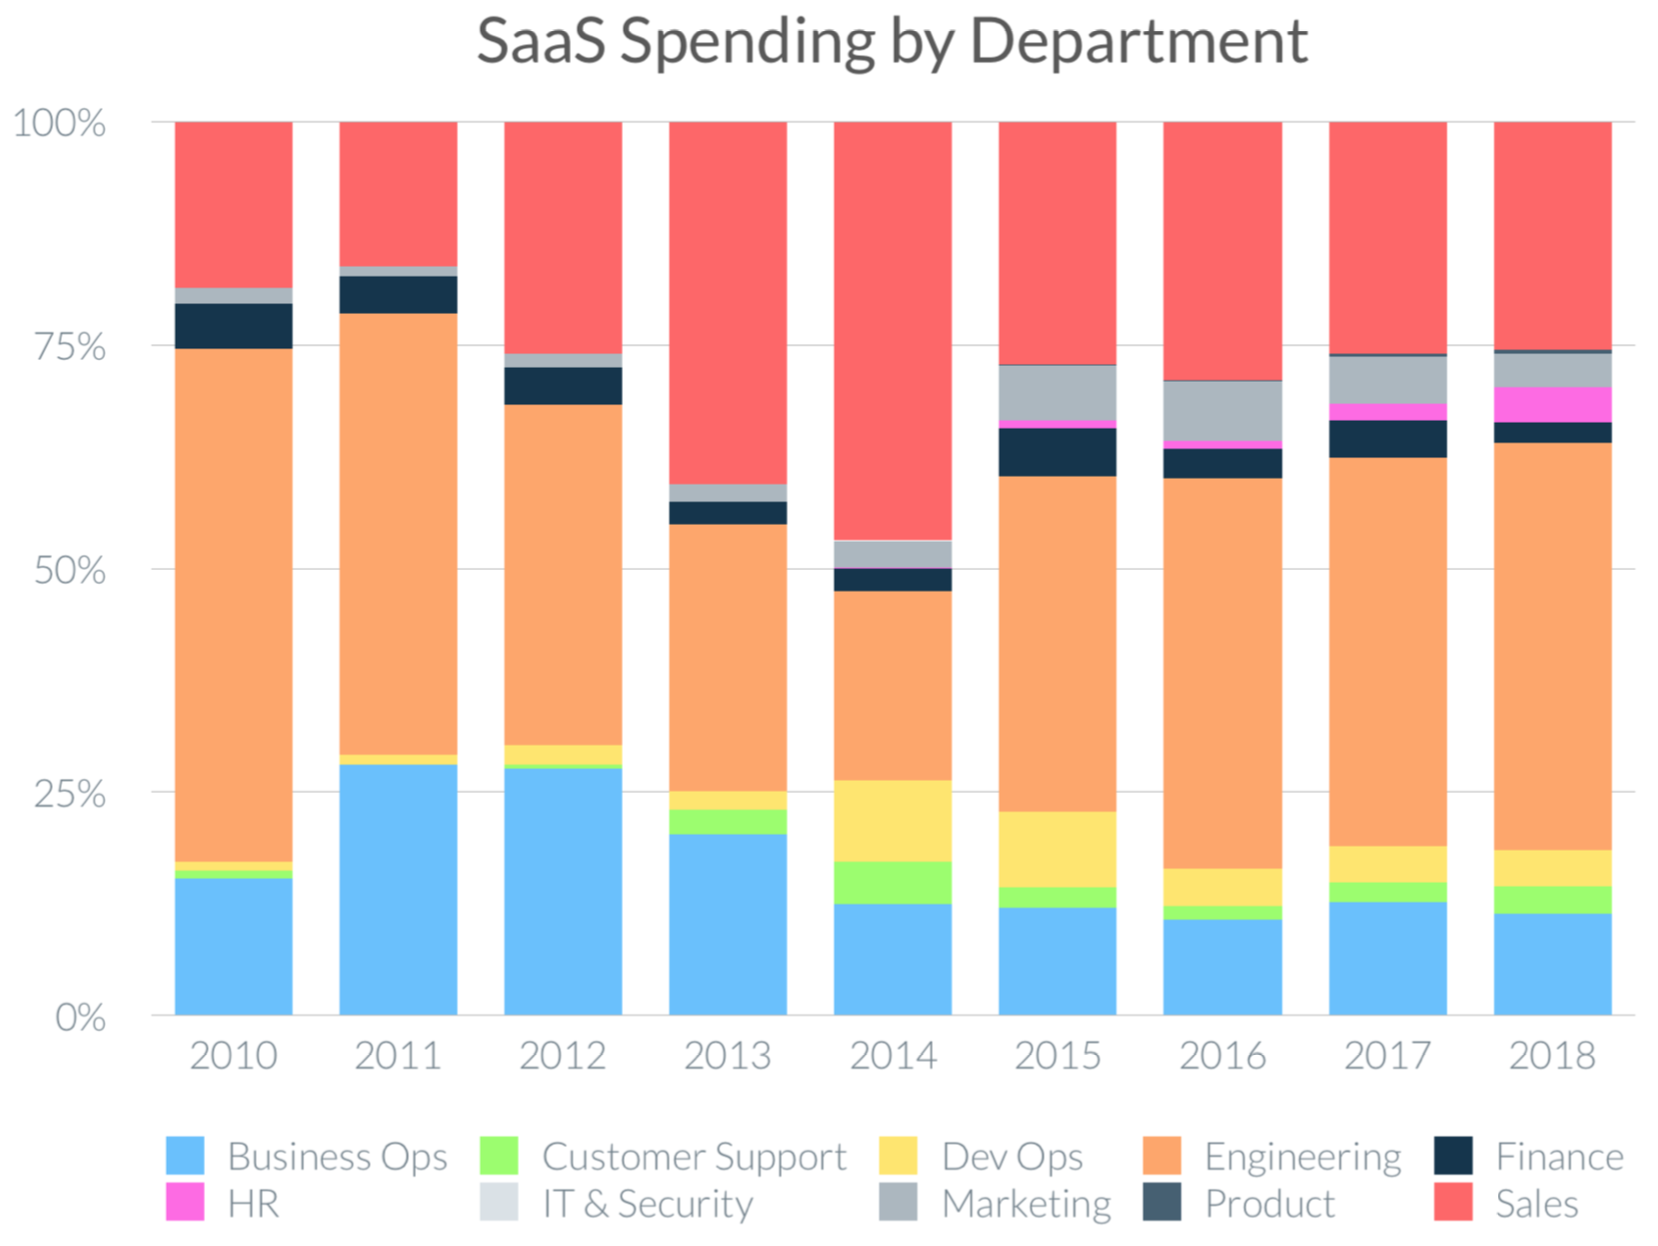 SaaS Trends in SaaS Spending by Department